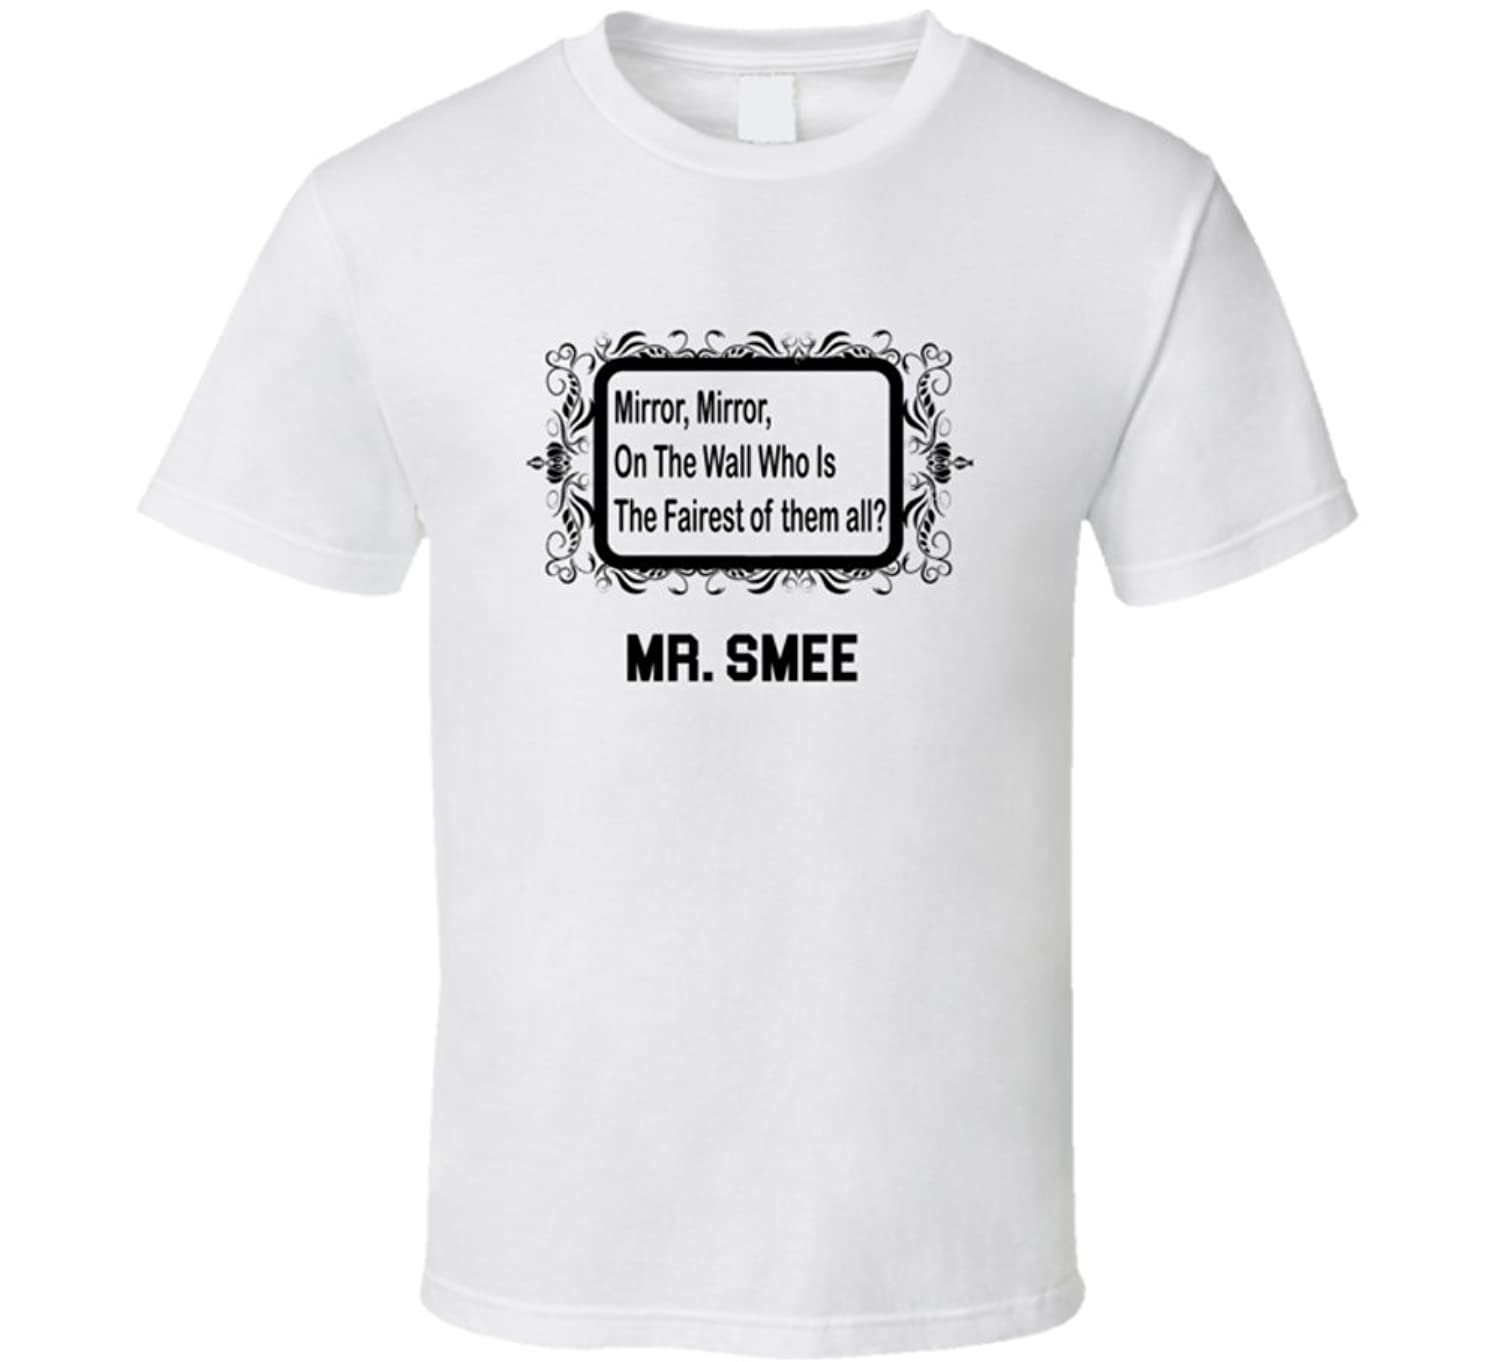 Mr. Smee is the Fairest Mirror, Mirron on the Wall Parody T shirt